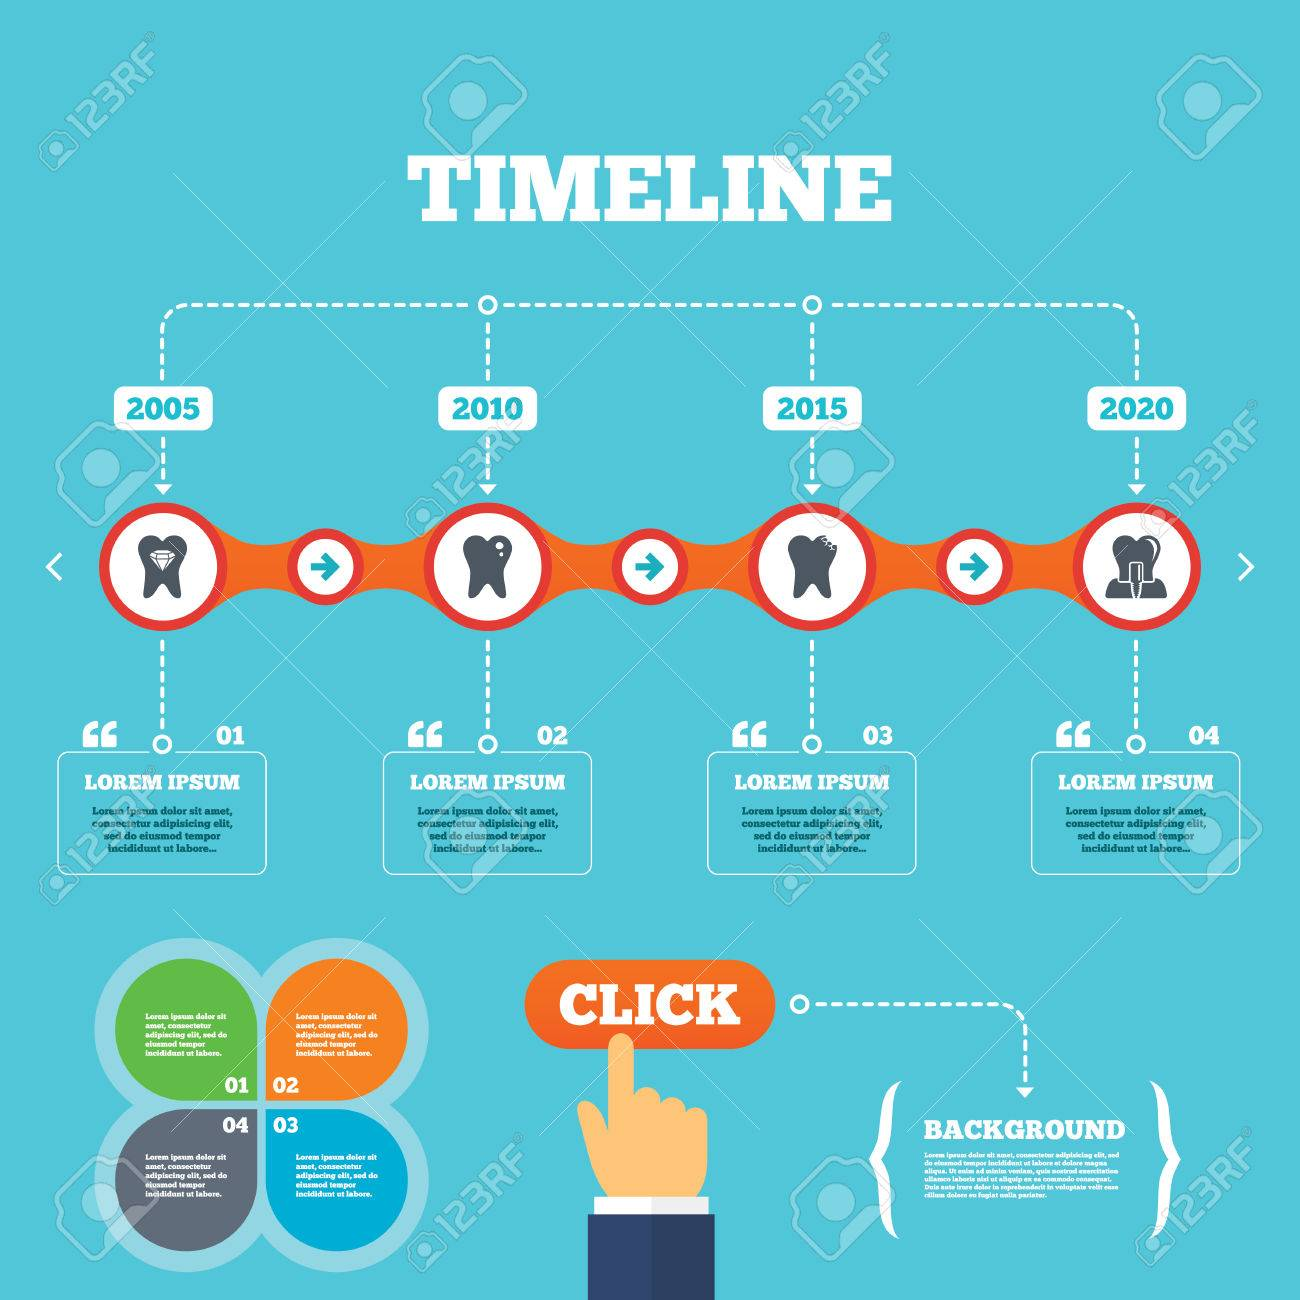 Dental Quotes Timeline With Arrows And Quotesdental Care Iconscaries Tooth